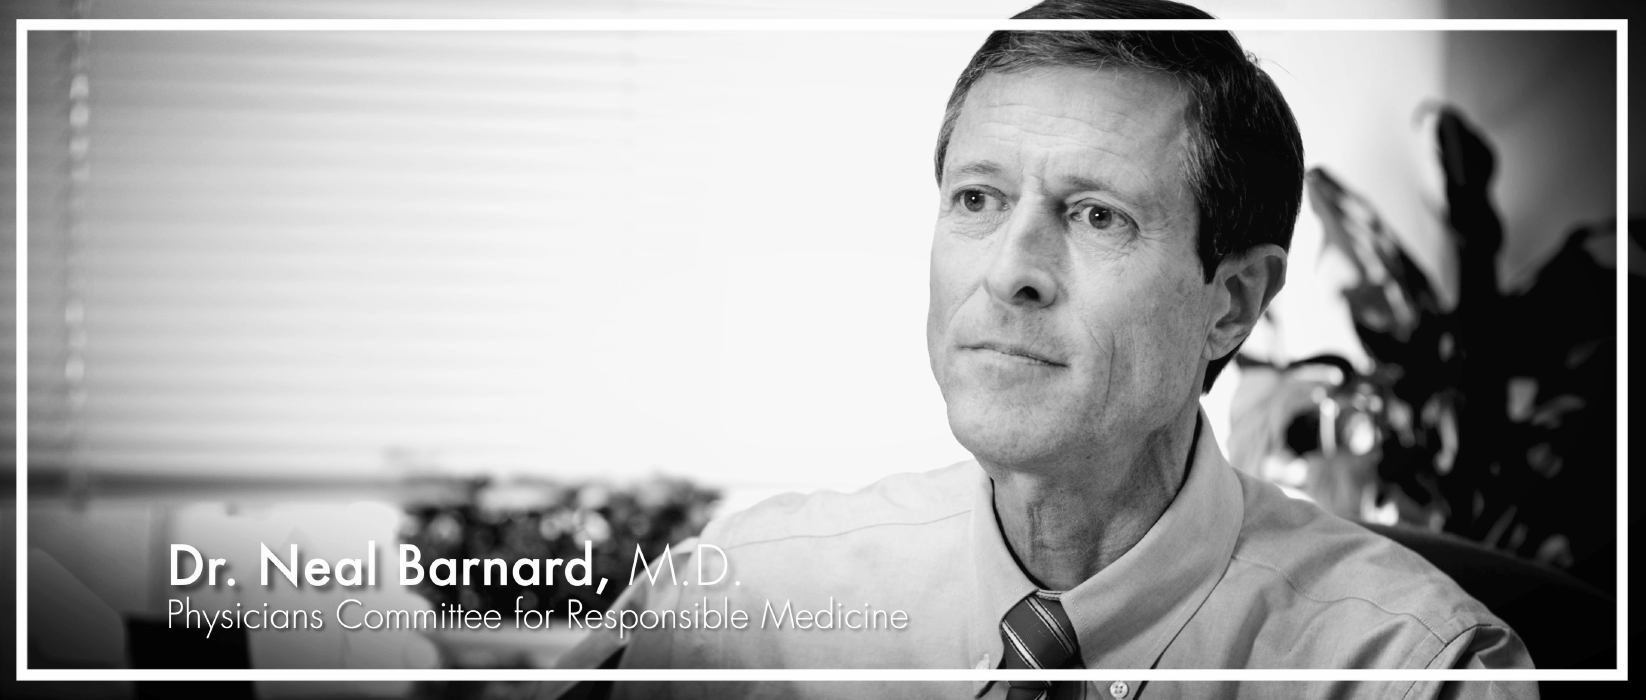 Dr. Neal Barnard  is an adjunct associate professor of medicine at the George Washington University School of Medicine and Health Sciences in Washington, D.C., and president of the Physicians Committee for Responsible Medicine. Dr. Barnard is one of America's leading advocates for health, nutrition, and higher standards in research. As the principal investigator of several human clinical research trials, whose results are published in peer-reviewed medical and scientific journals, Dr. Barnard continues to examine key issues in health and nutrition.